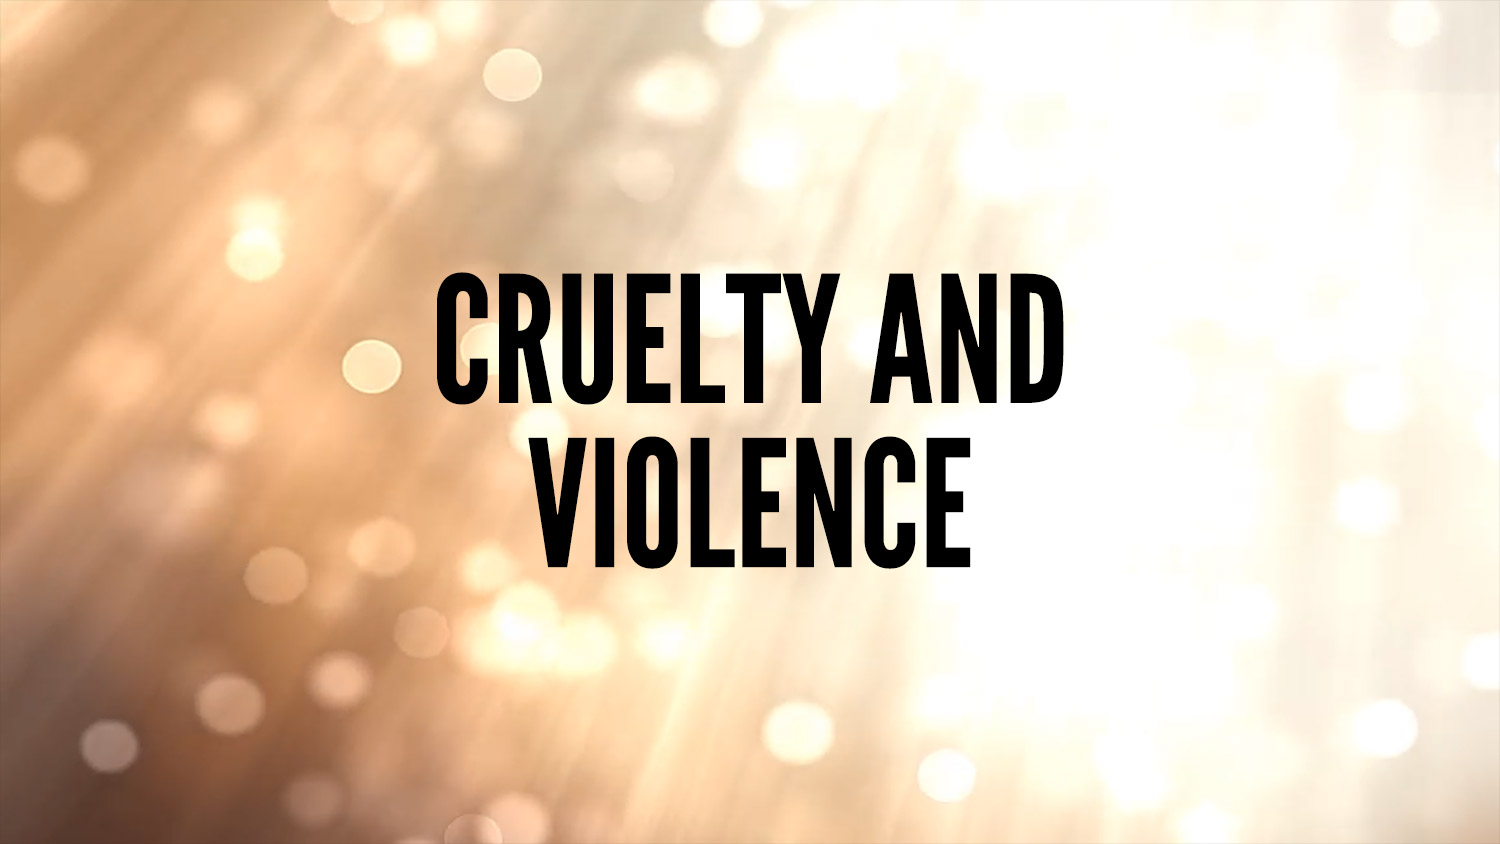 cruelty and violence